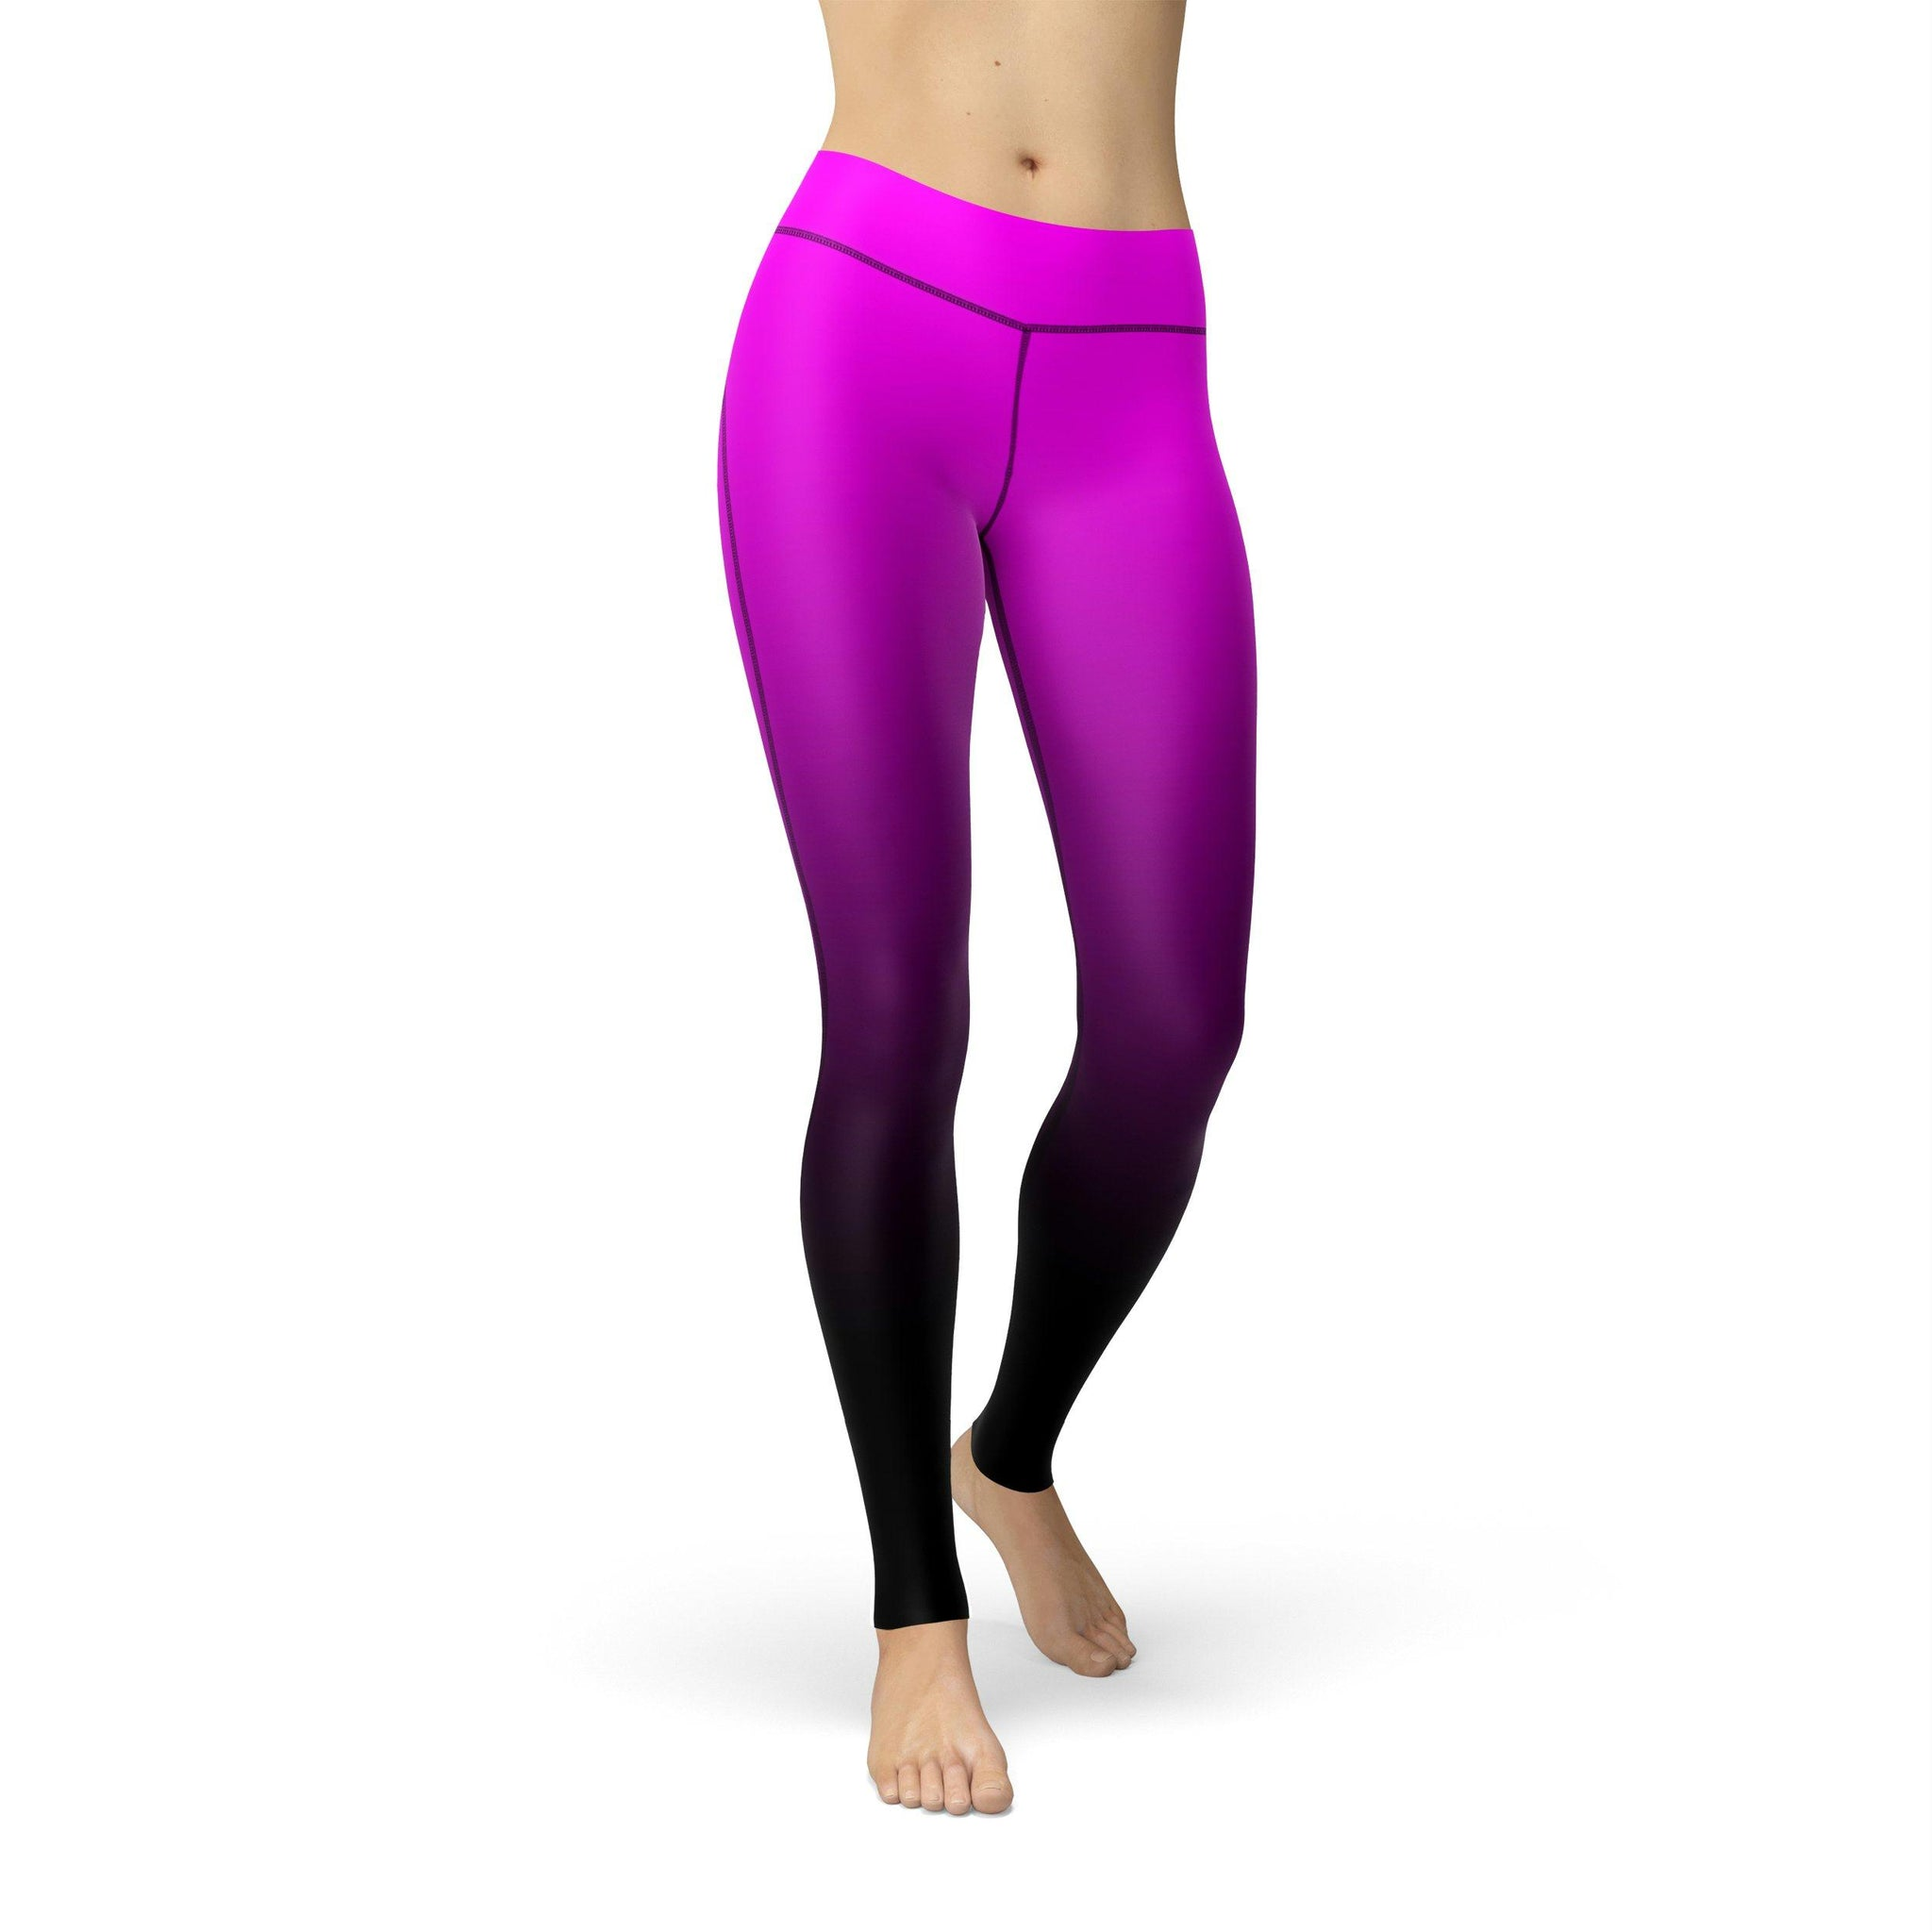 High-Waist Violet Fusion Yoga Pants